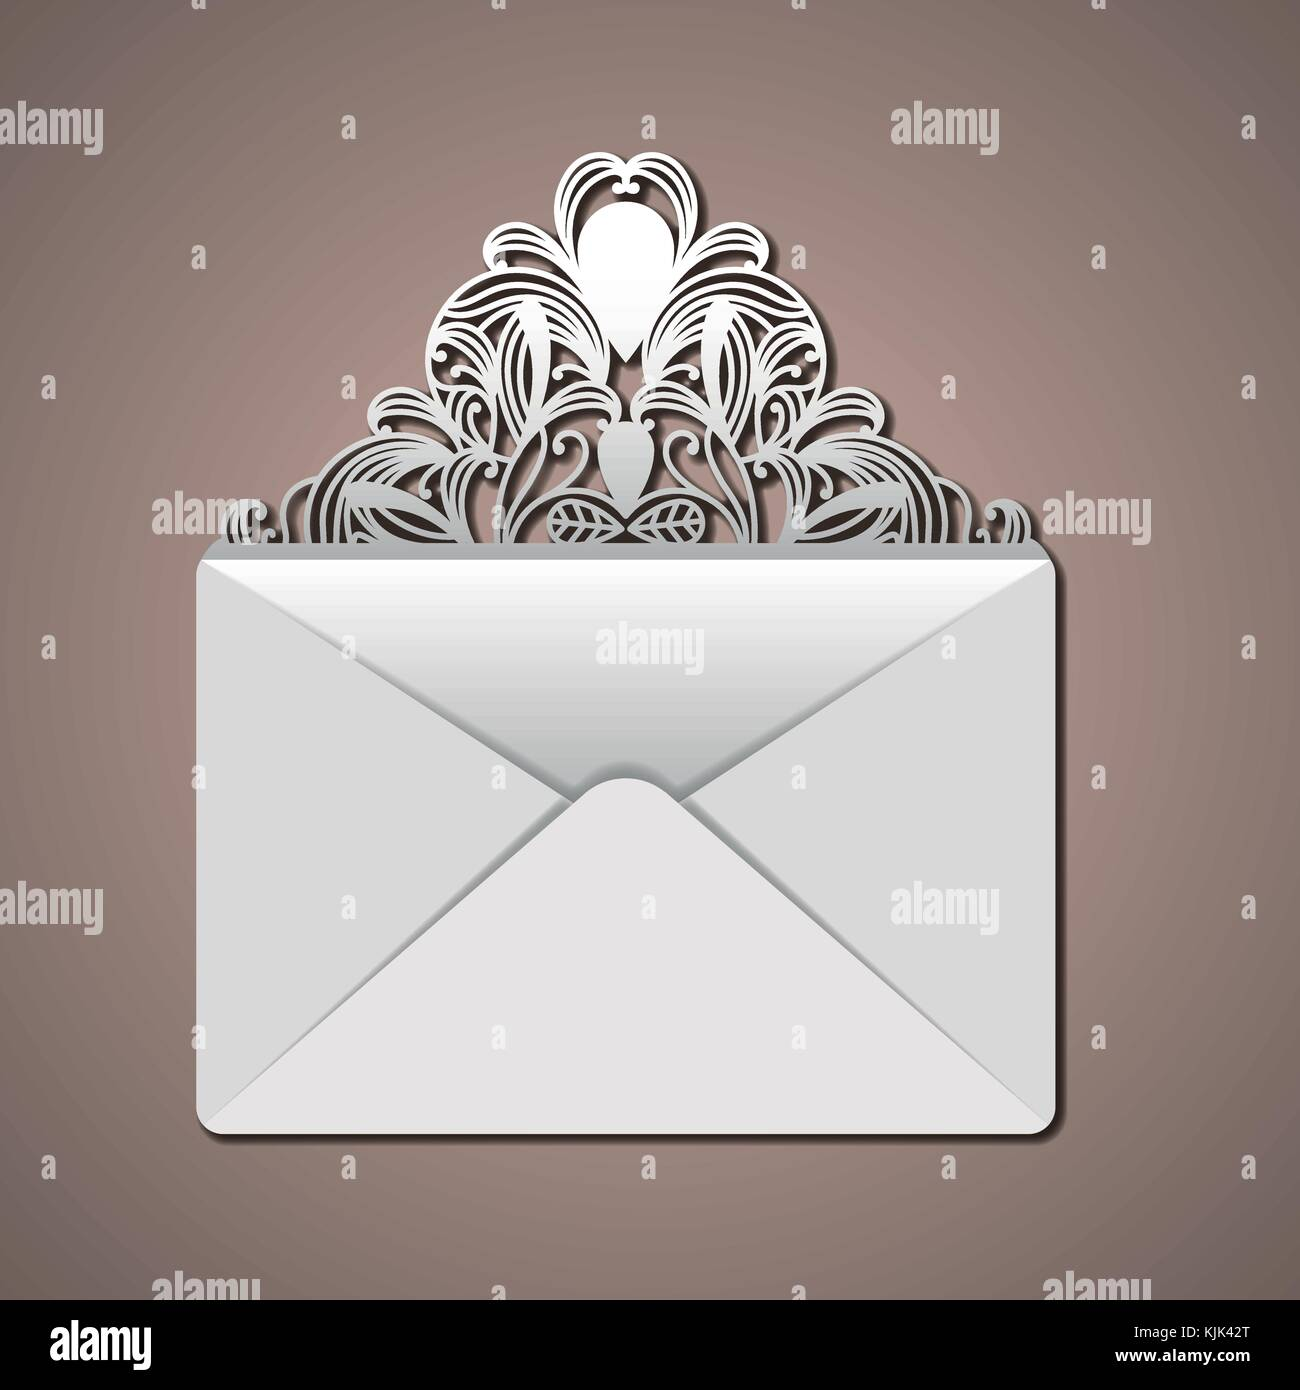 laser cutting in flap of envelope with decorative forms in thistle color background - Stock Image